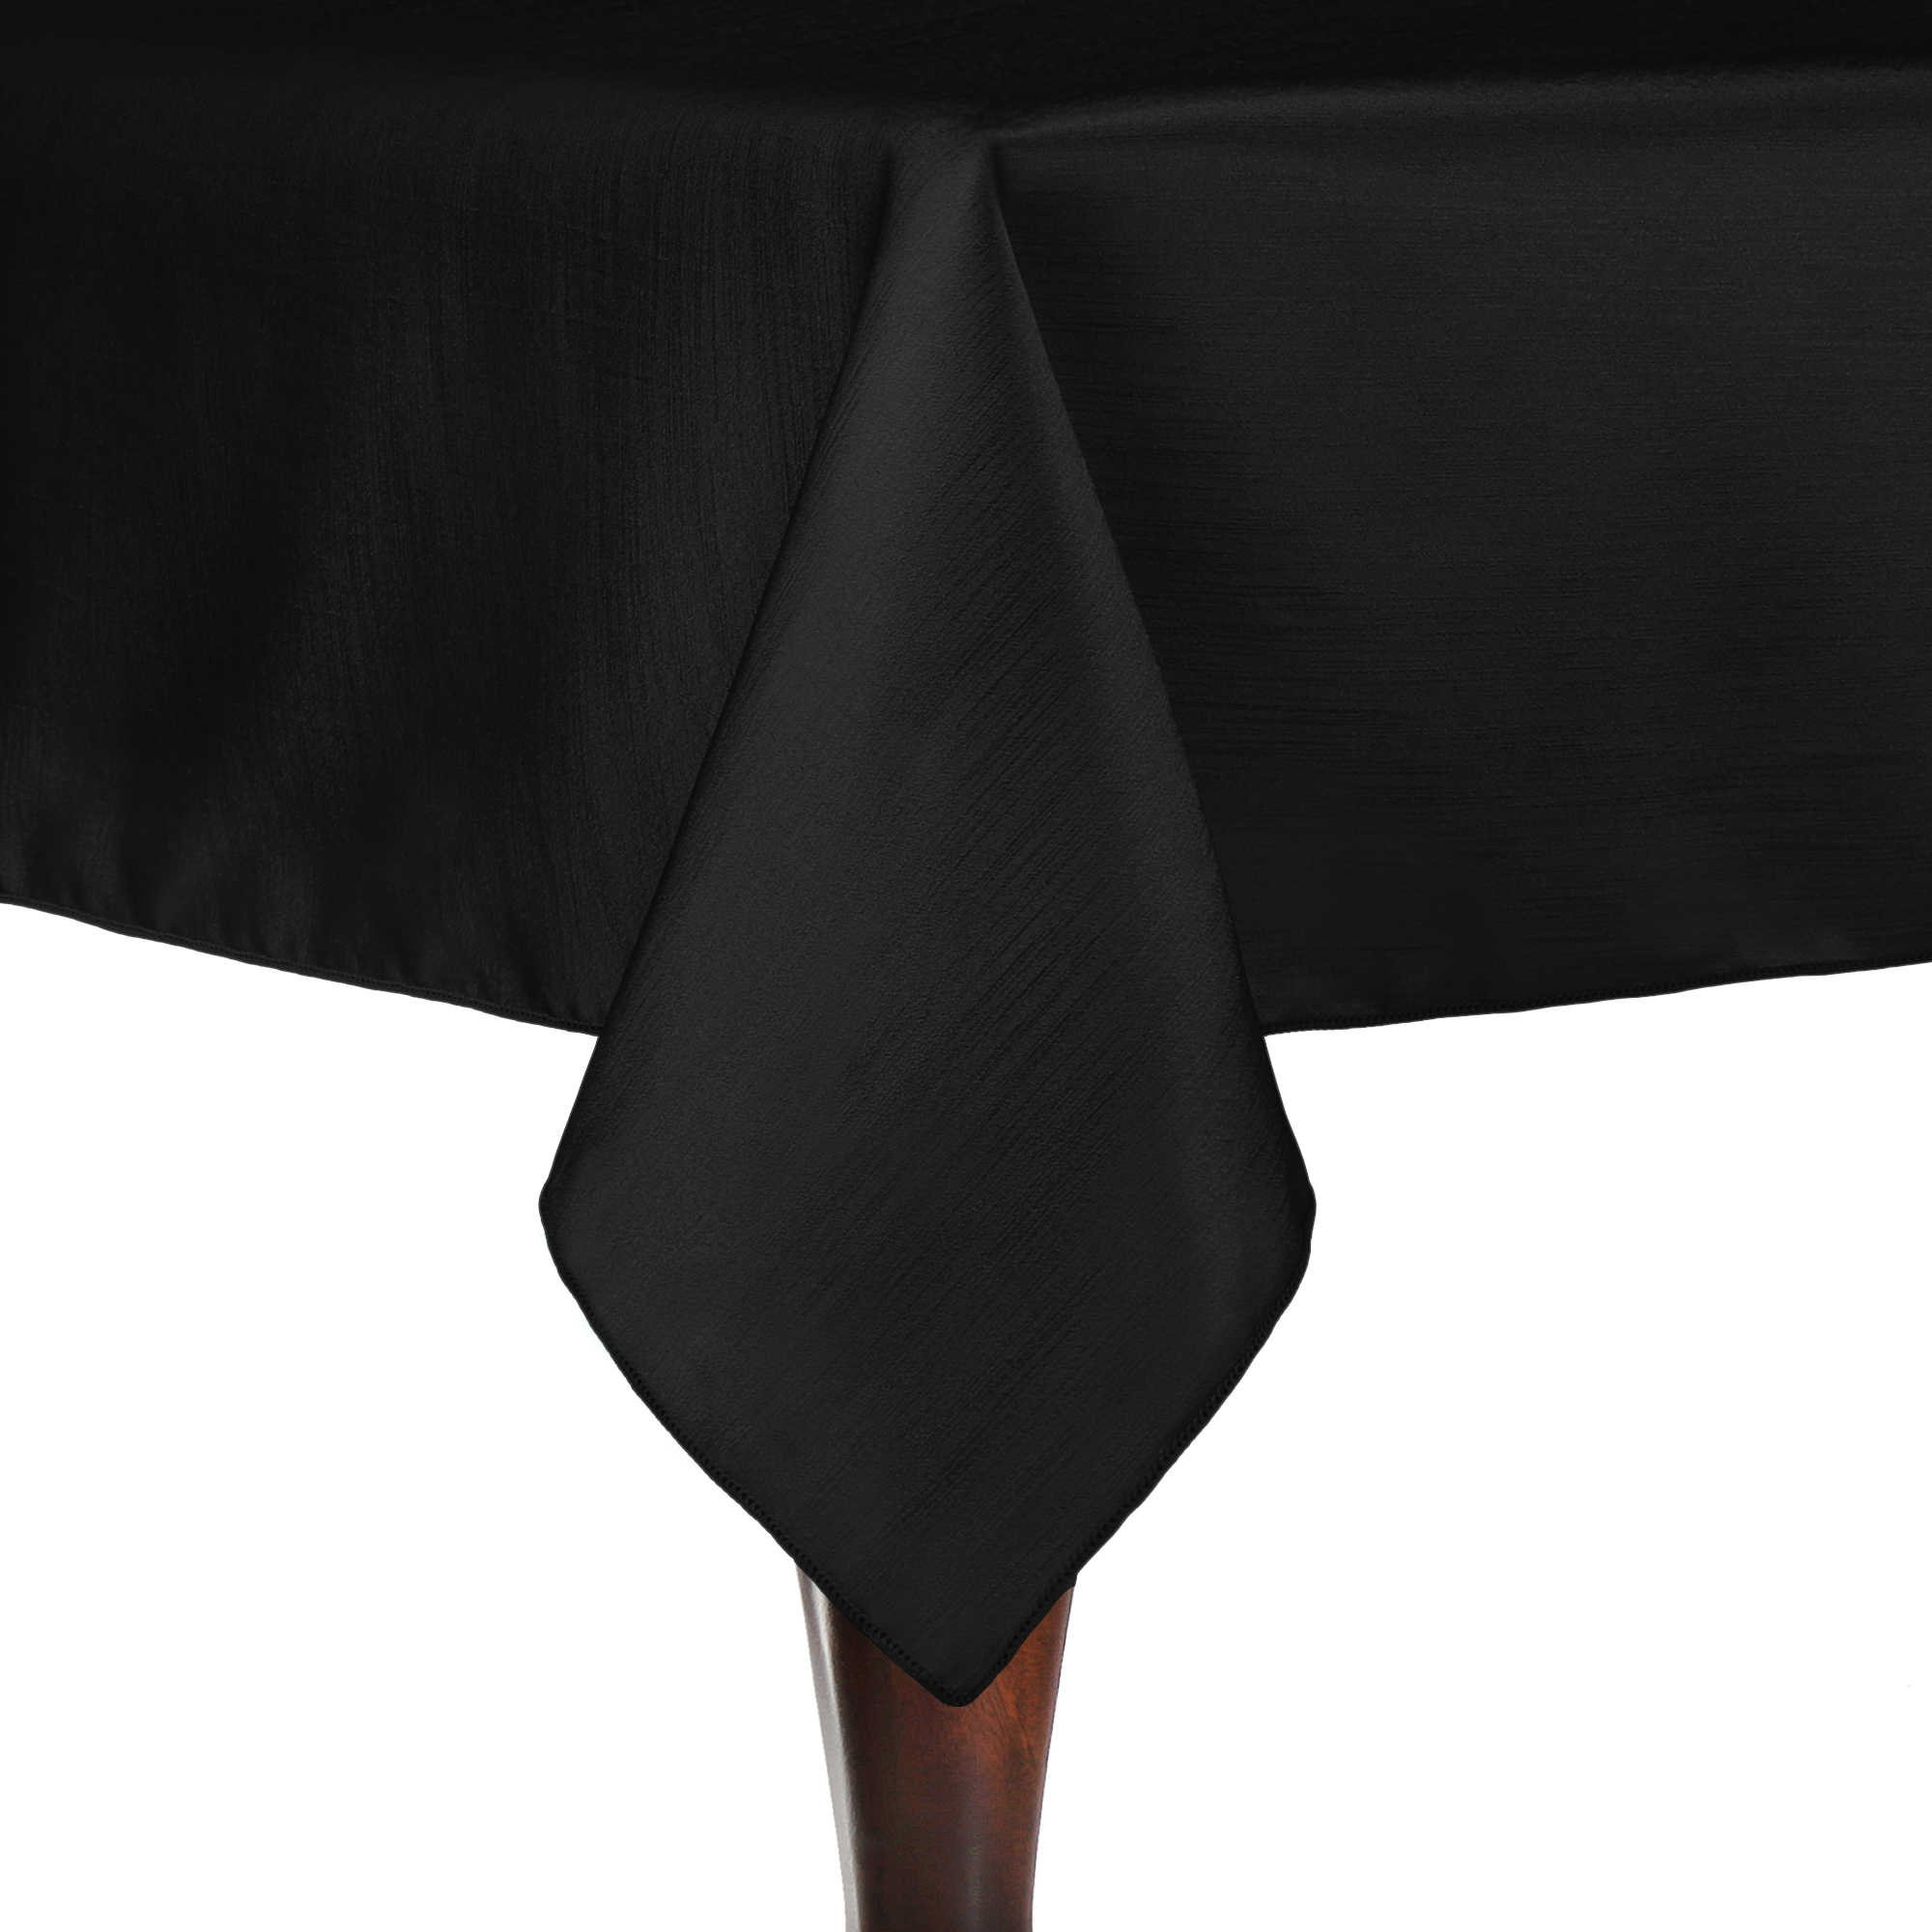 Ultimate Textile (10 Pack) Reversible Shantung Satin - Majestic 72 x 72-Inch Square Tablecloth - for Weddings, Home Parties and Special Event use, Black